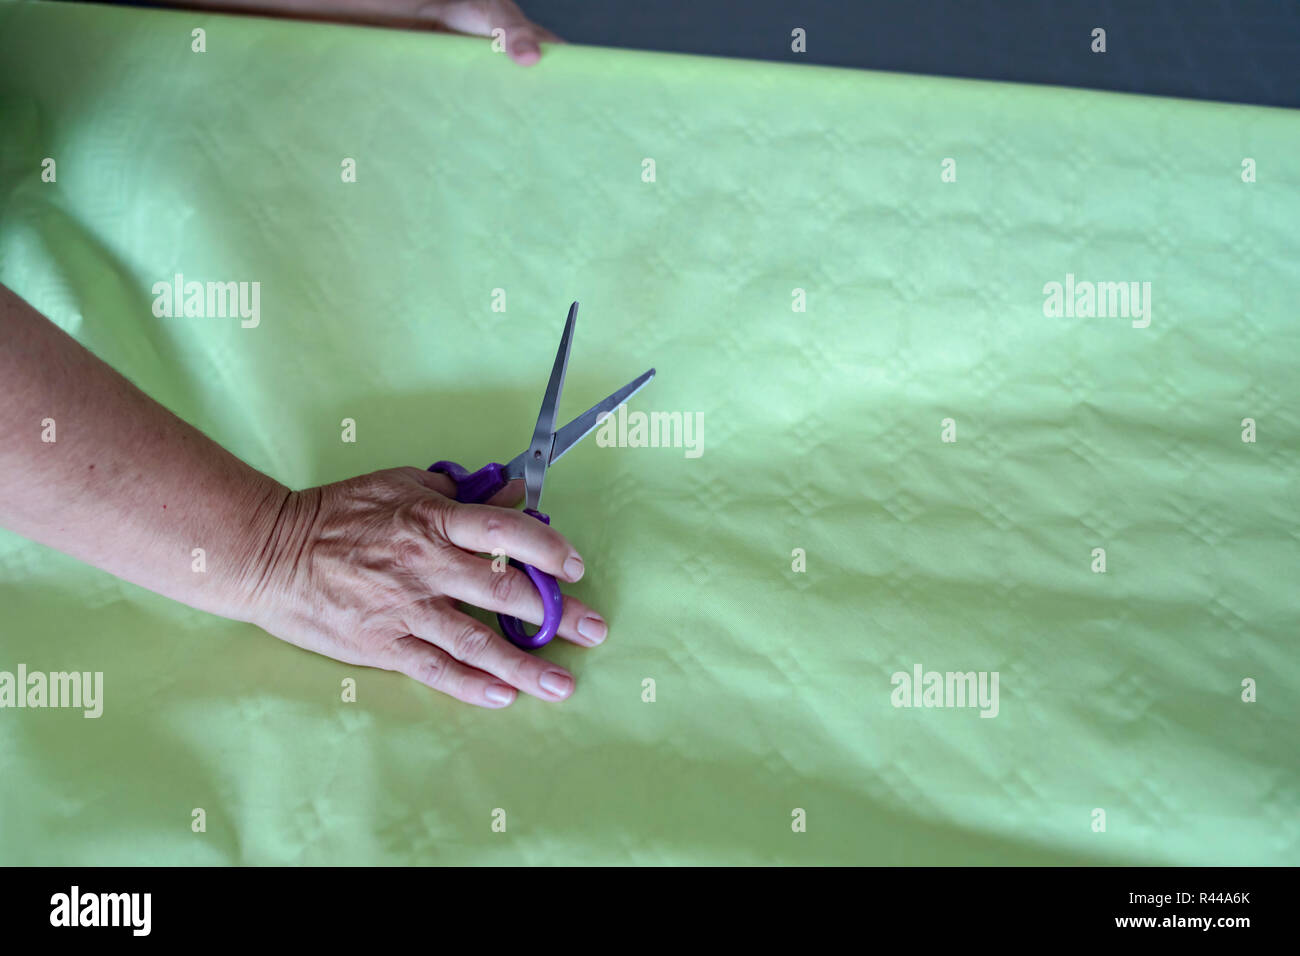 Hand of an elderly woman holding a pair of purple scissors on a green gift wrap roll or paper tablecloths getting ready for upcoming festivities. - Stock Image